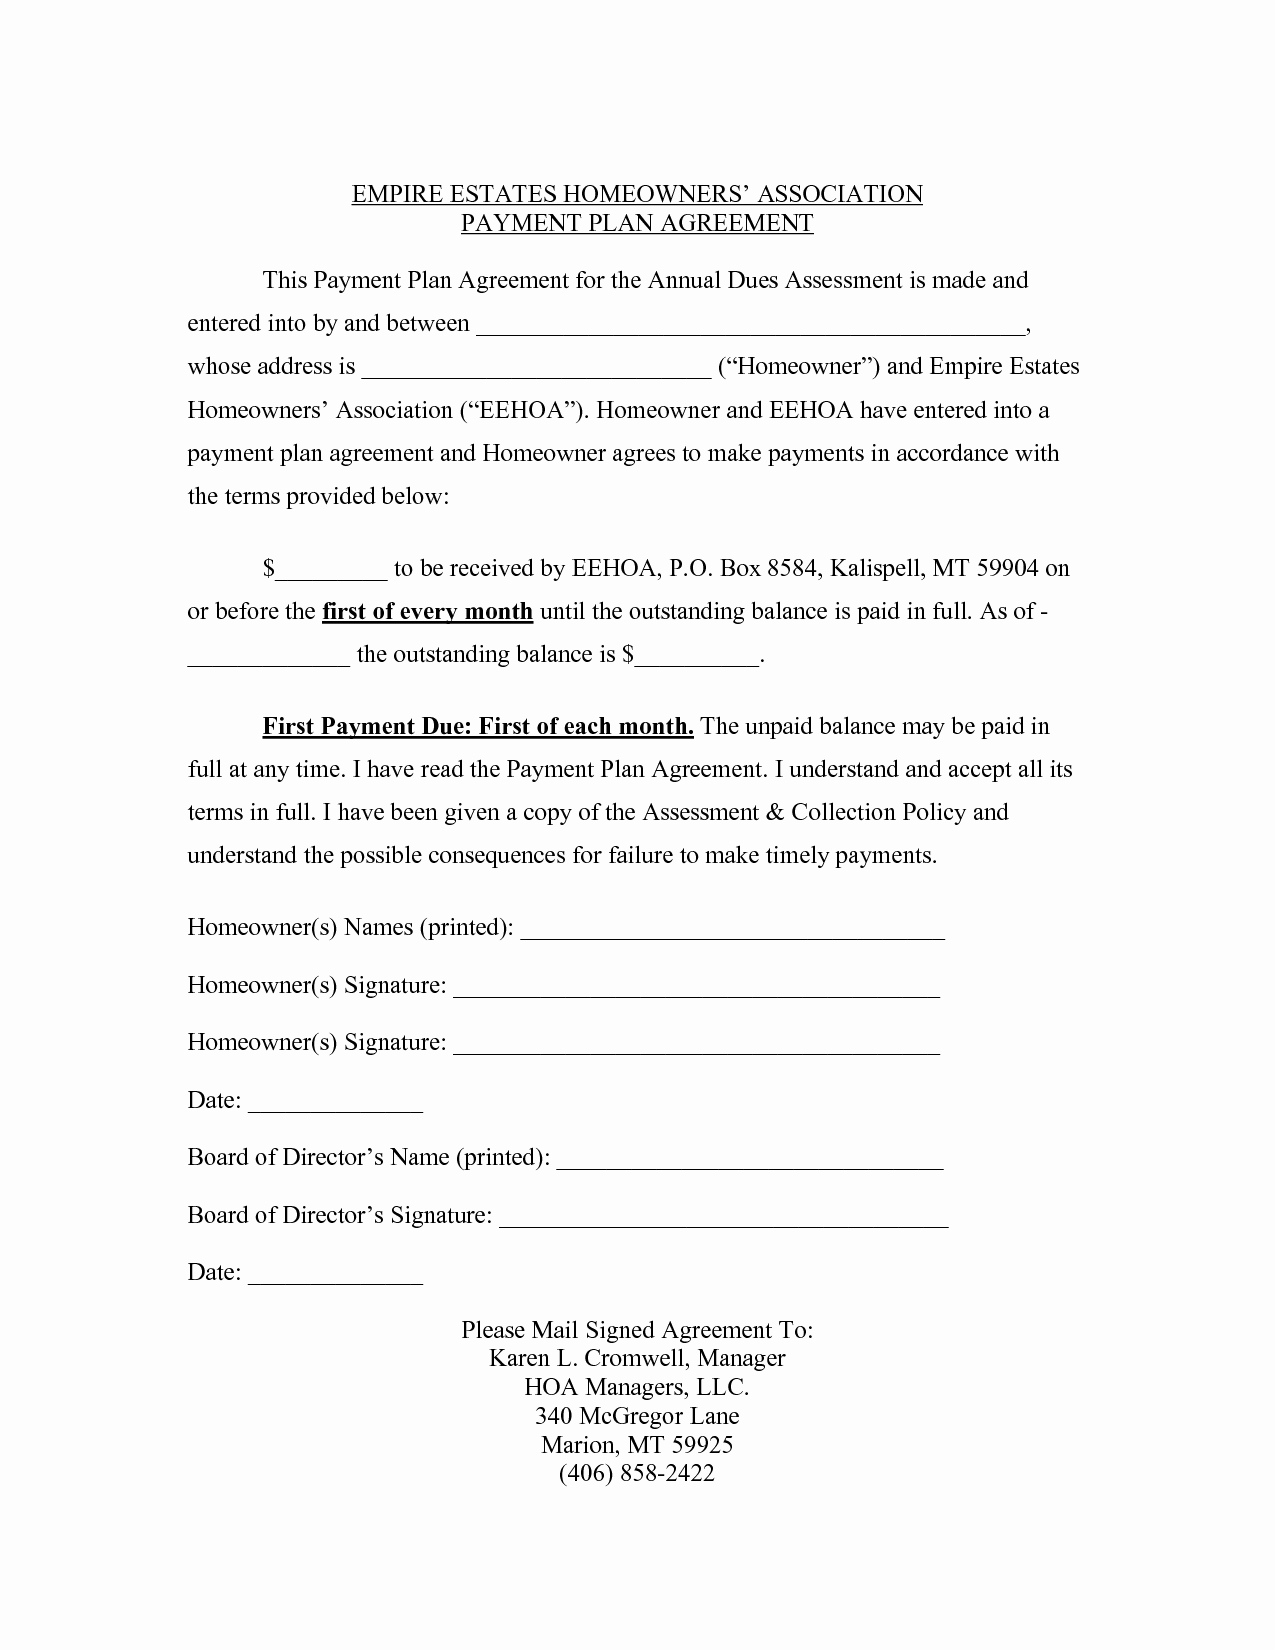 Payment Agreement Contract Pdf Inspirational Loan Agreement Template Microsoft Word Templates Qpfwvy